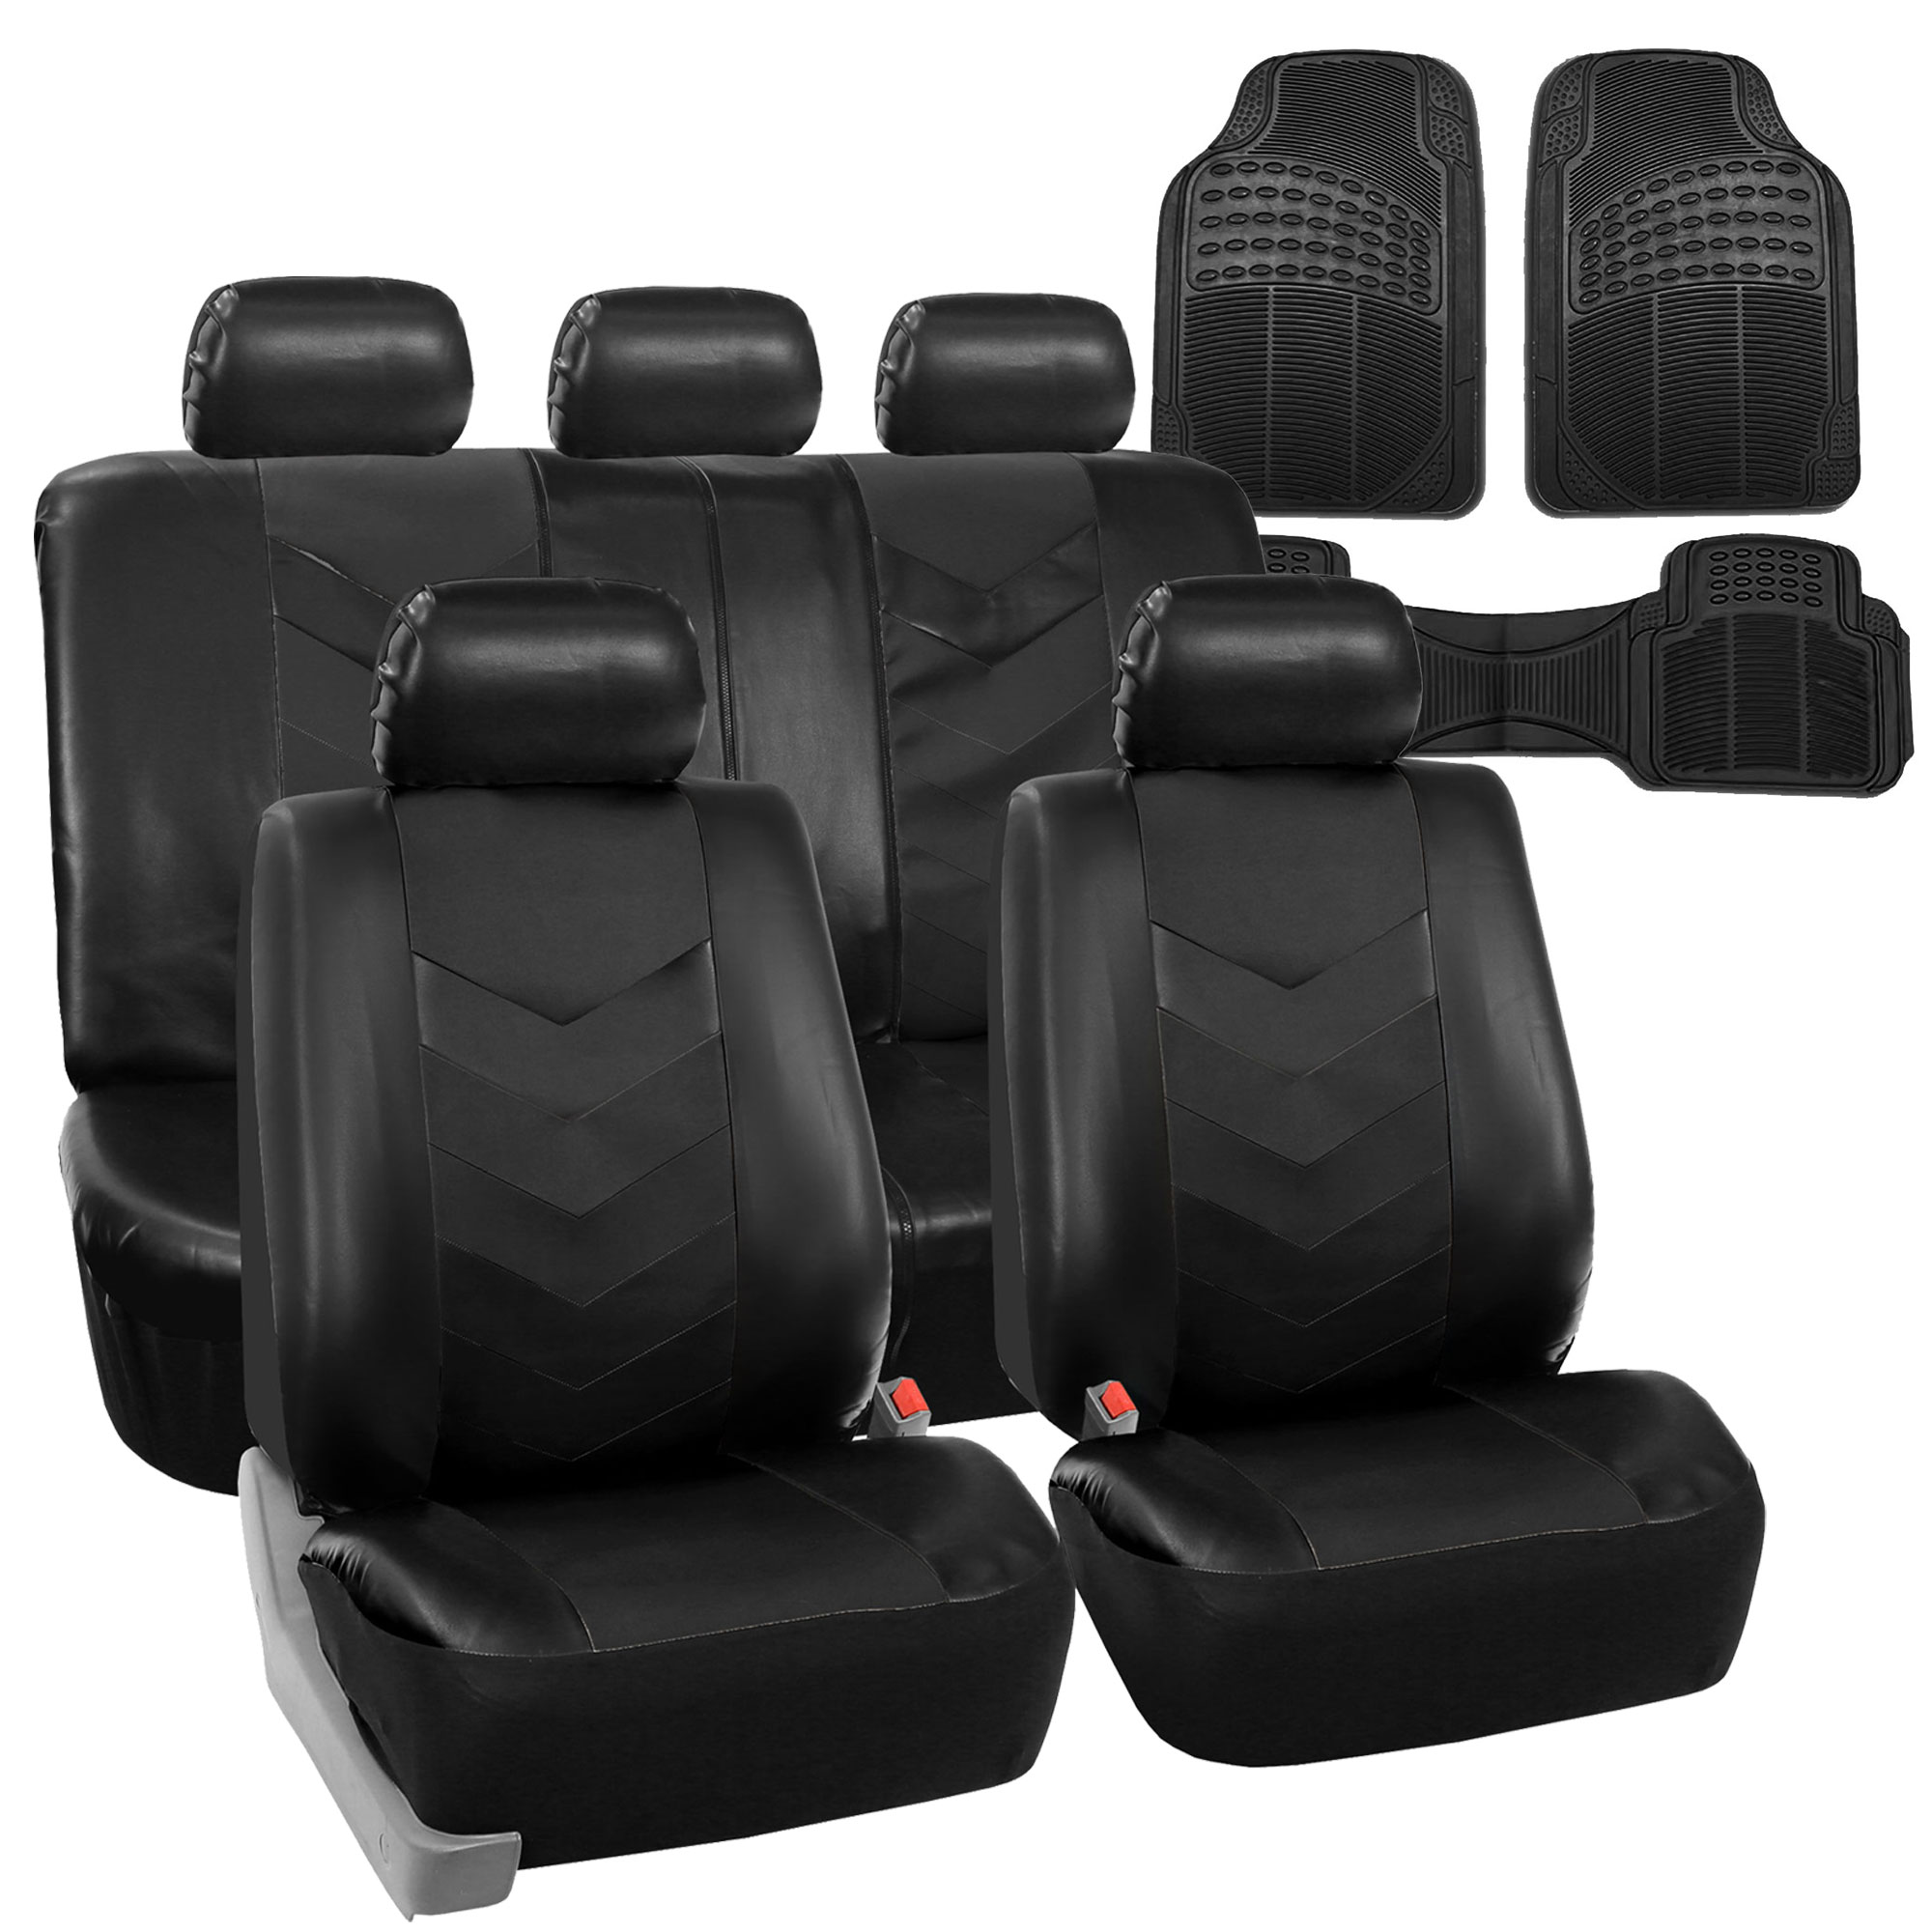 PU-Leather-Car-Seat-Covers-amp-Black-All-Weather-Floor-Mats-Full-Interior-Set